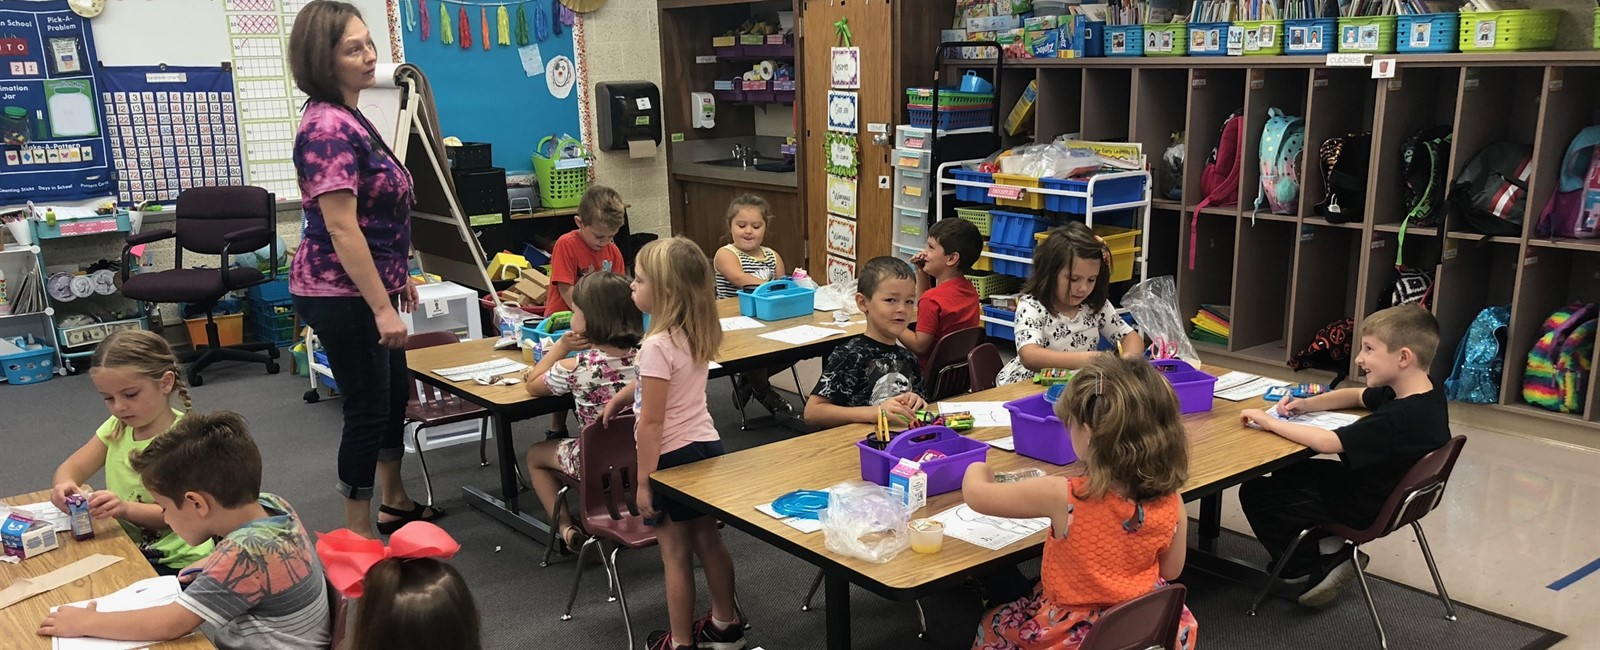 Smaller class sizes means more personalized instruction for Sebring students.